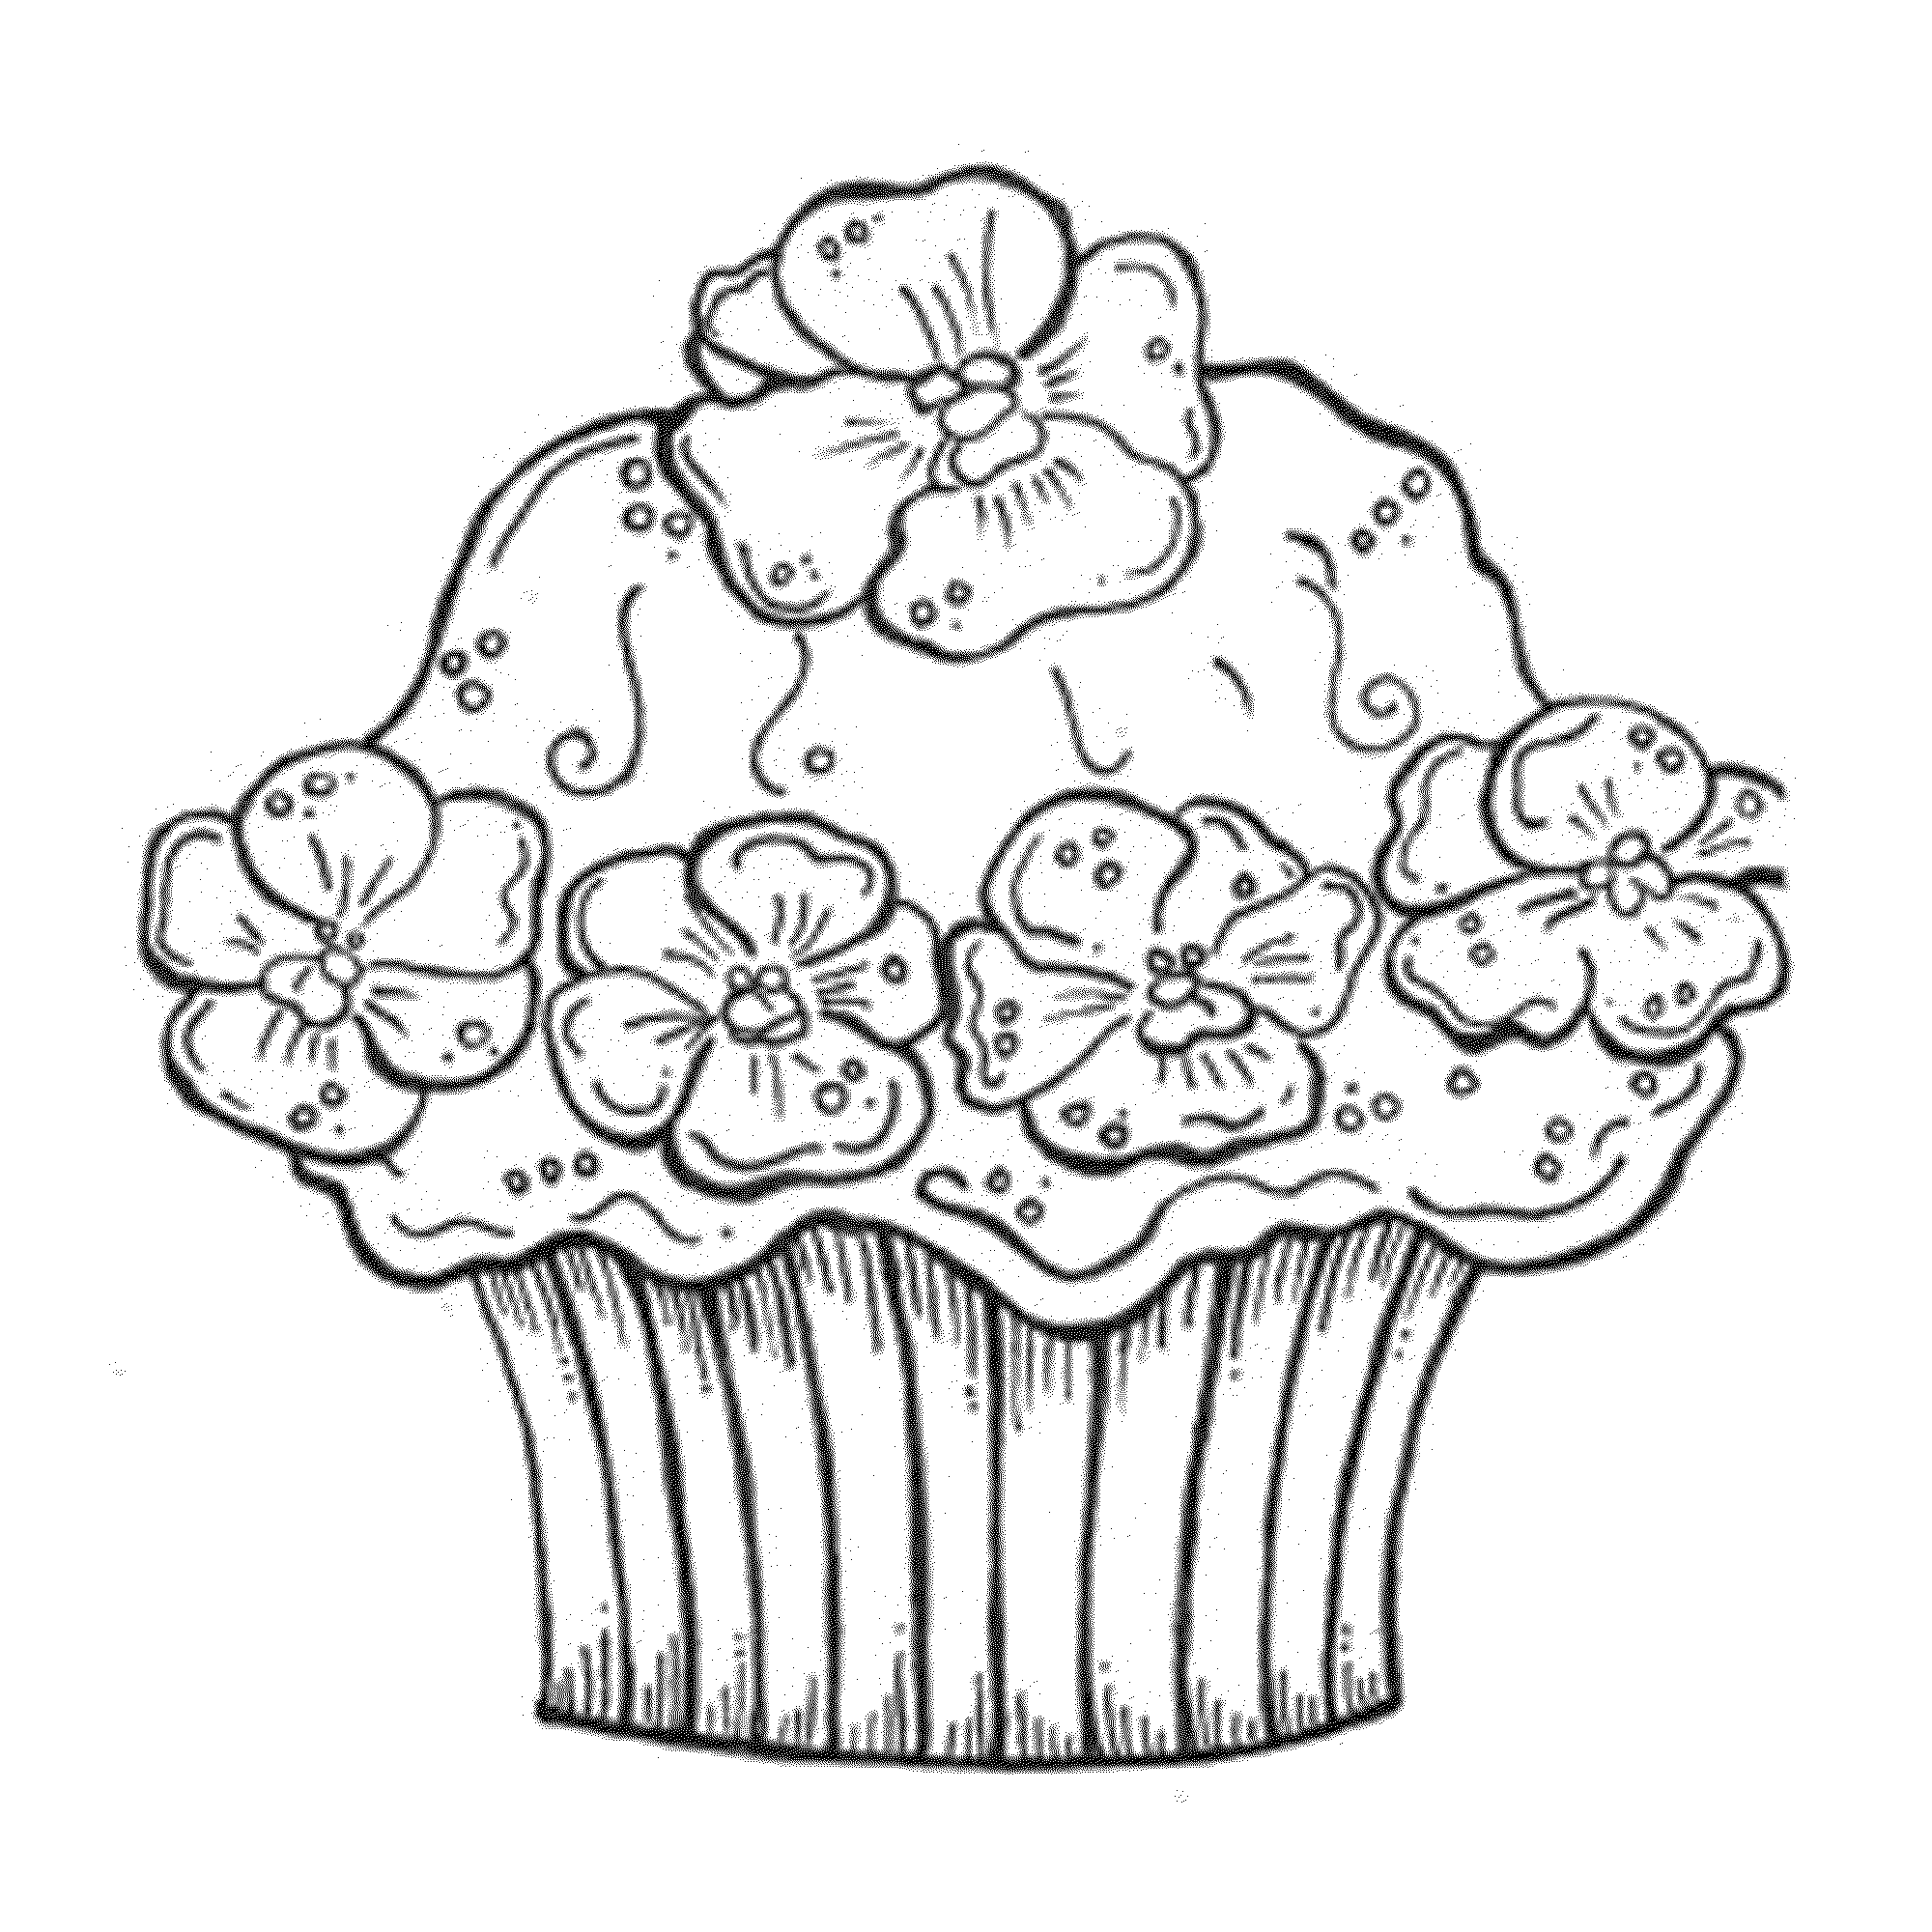 Cupcake Coloring Pages Gallery Photos